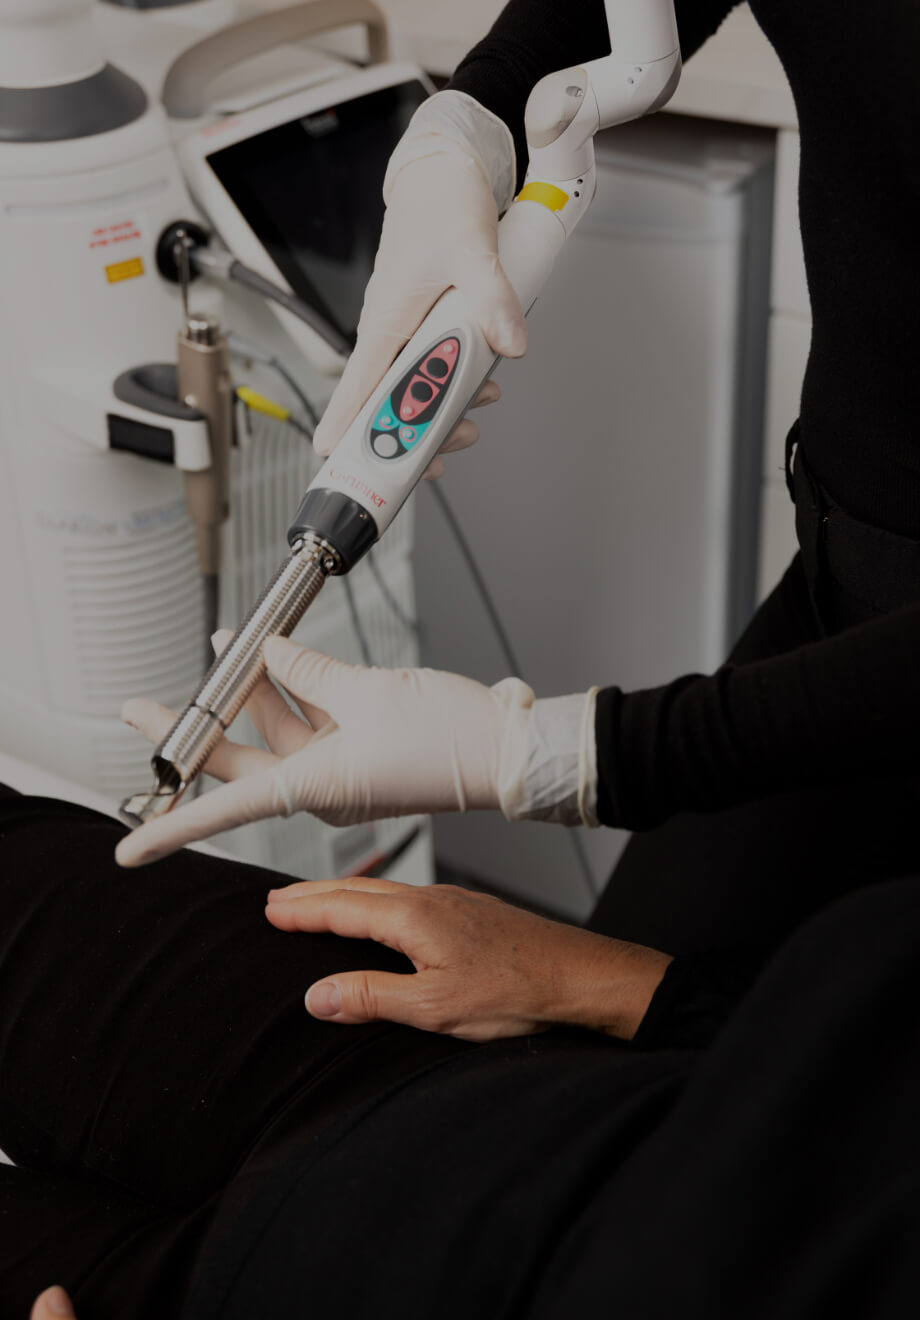 A nurse from Clinique Chloé demonstrating the IntimaLase tip of the Fotona laser to a female patient